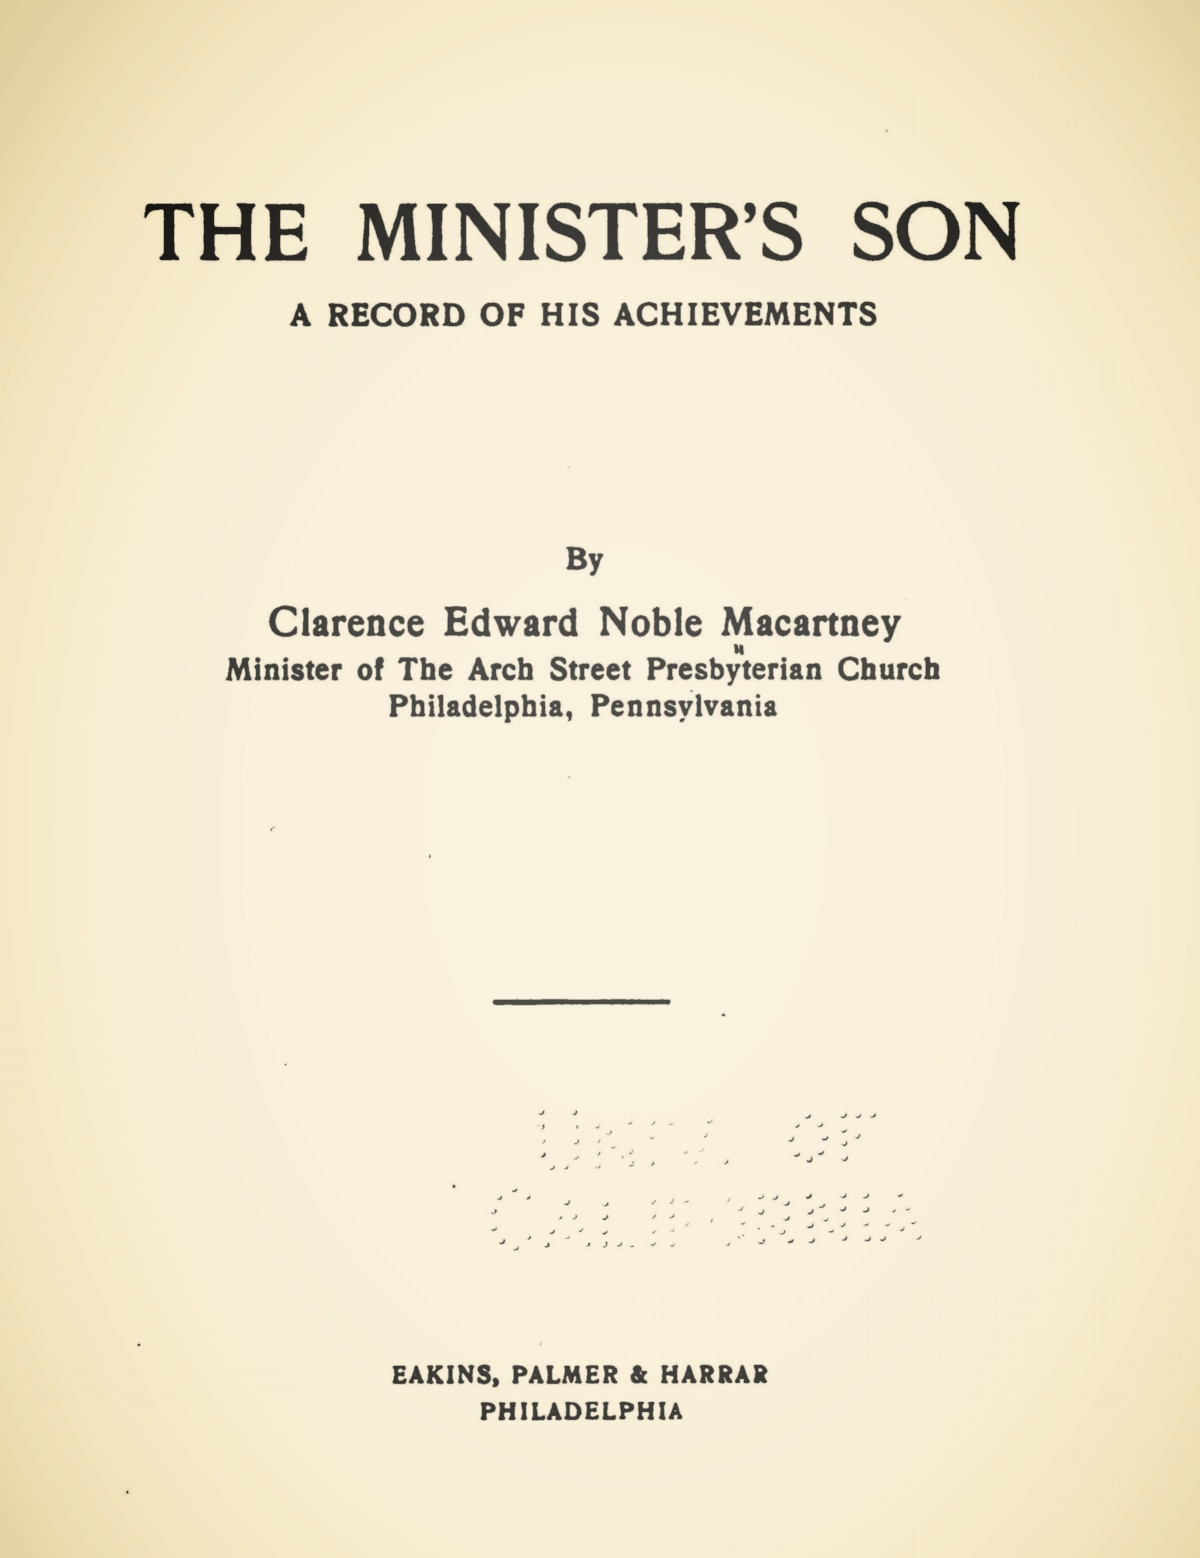 Macartney, Clarence Edward Noble, The Minister's Son Title Page.jpg